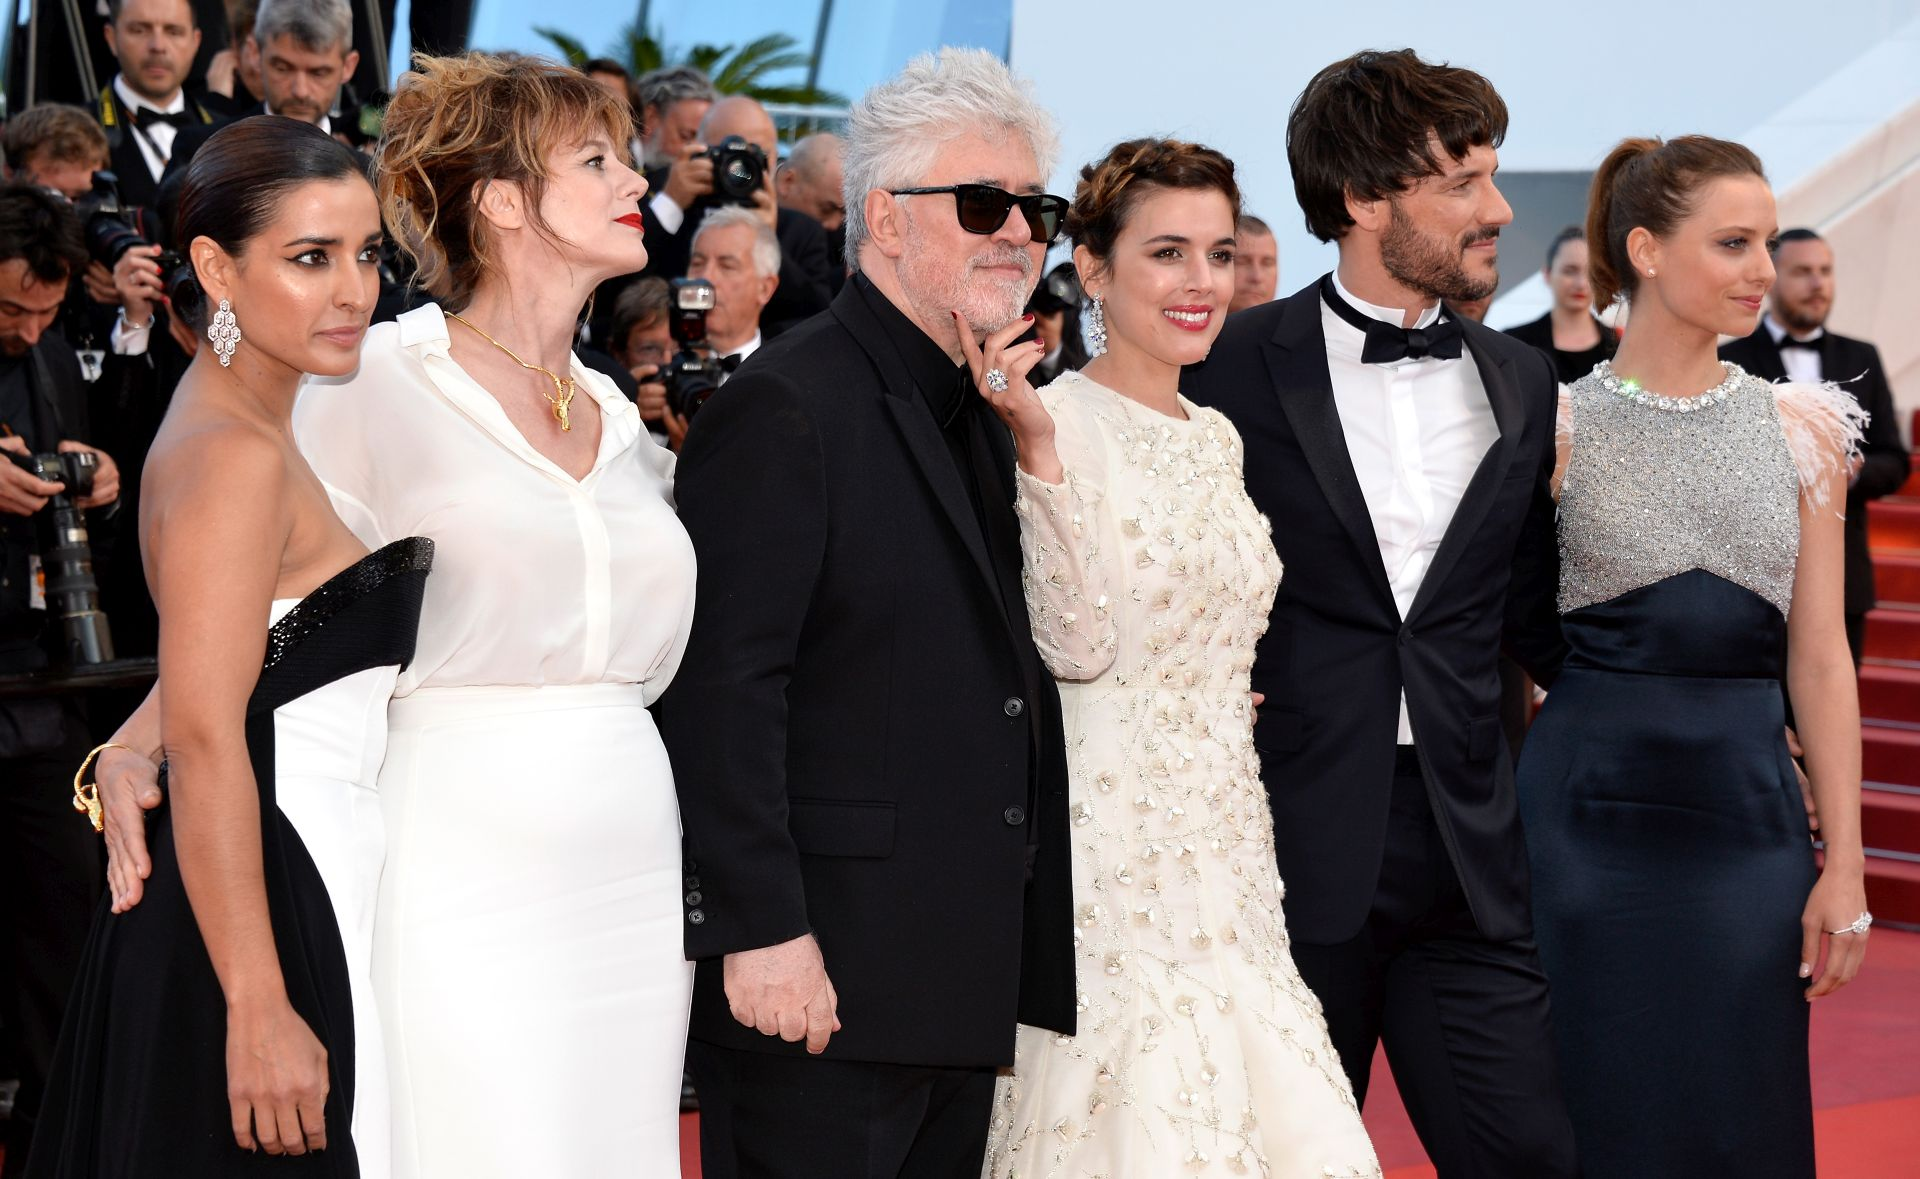 Inma Cuesta,  Emma Suarez, Pedro Almodovar, Adriana Ugarte, Daniel Grao i Michelle Jenner (Photo by Pascal Le Segretain/Getty Images)